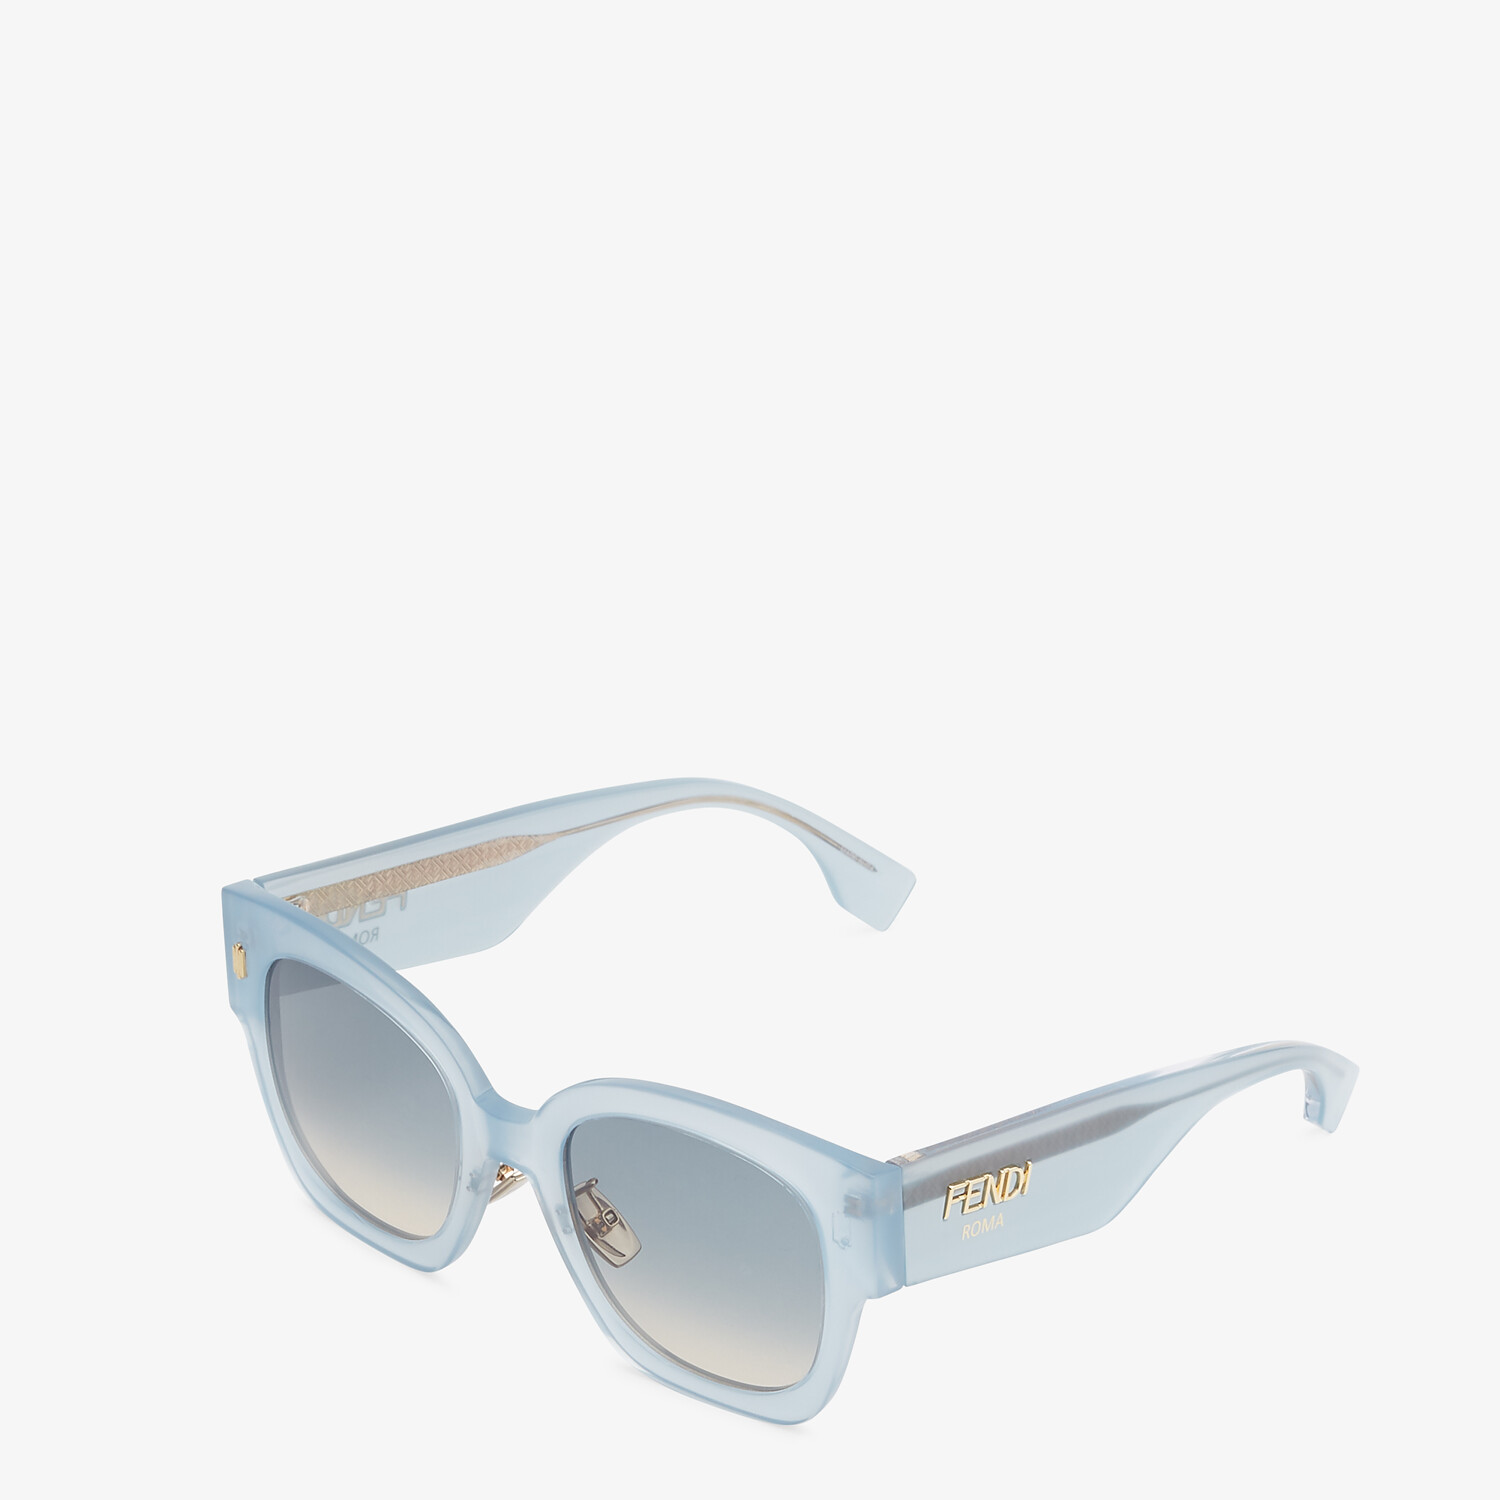 FENDI FENDI ROMA - Light blue acetate sunglasses - view 2 detail